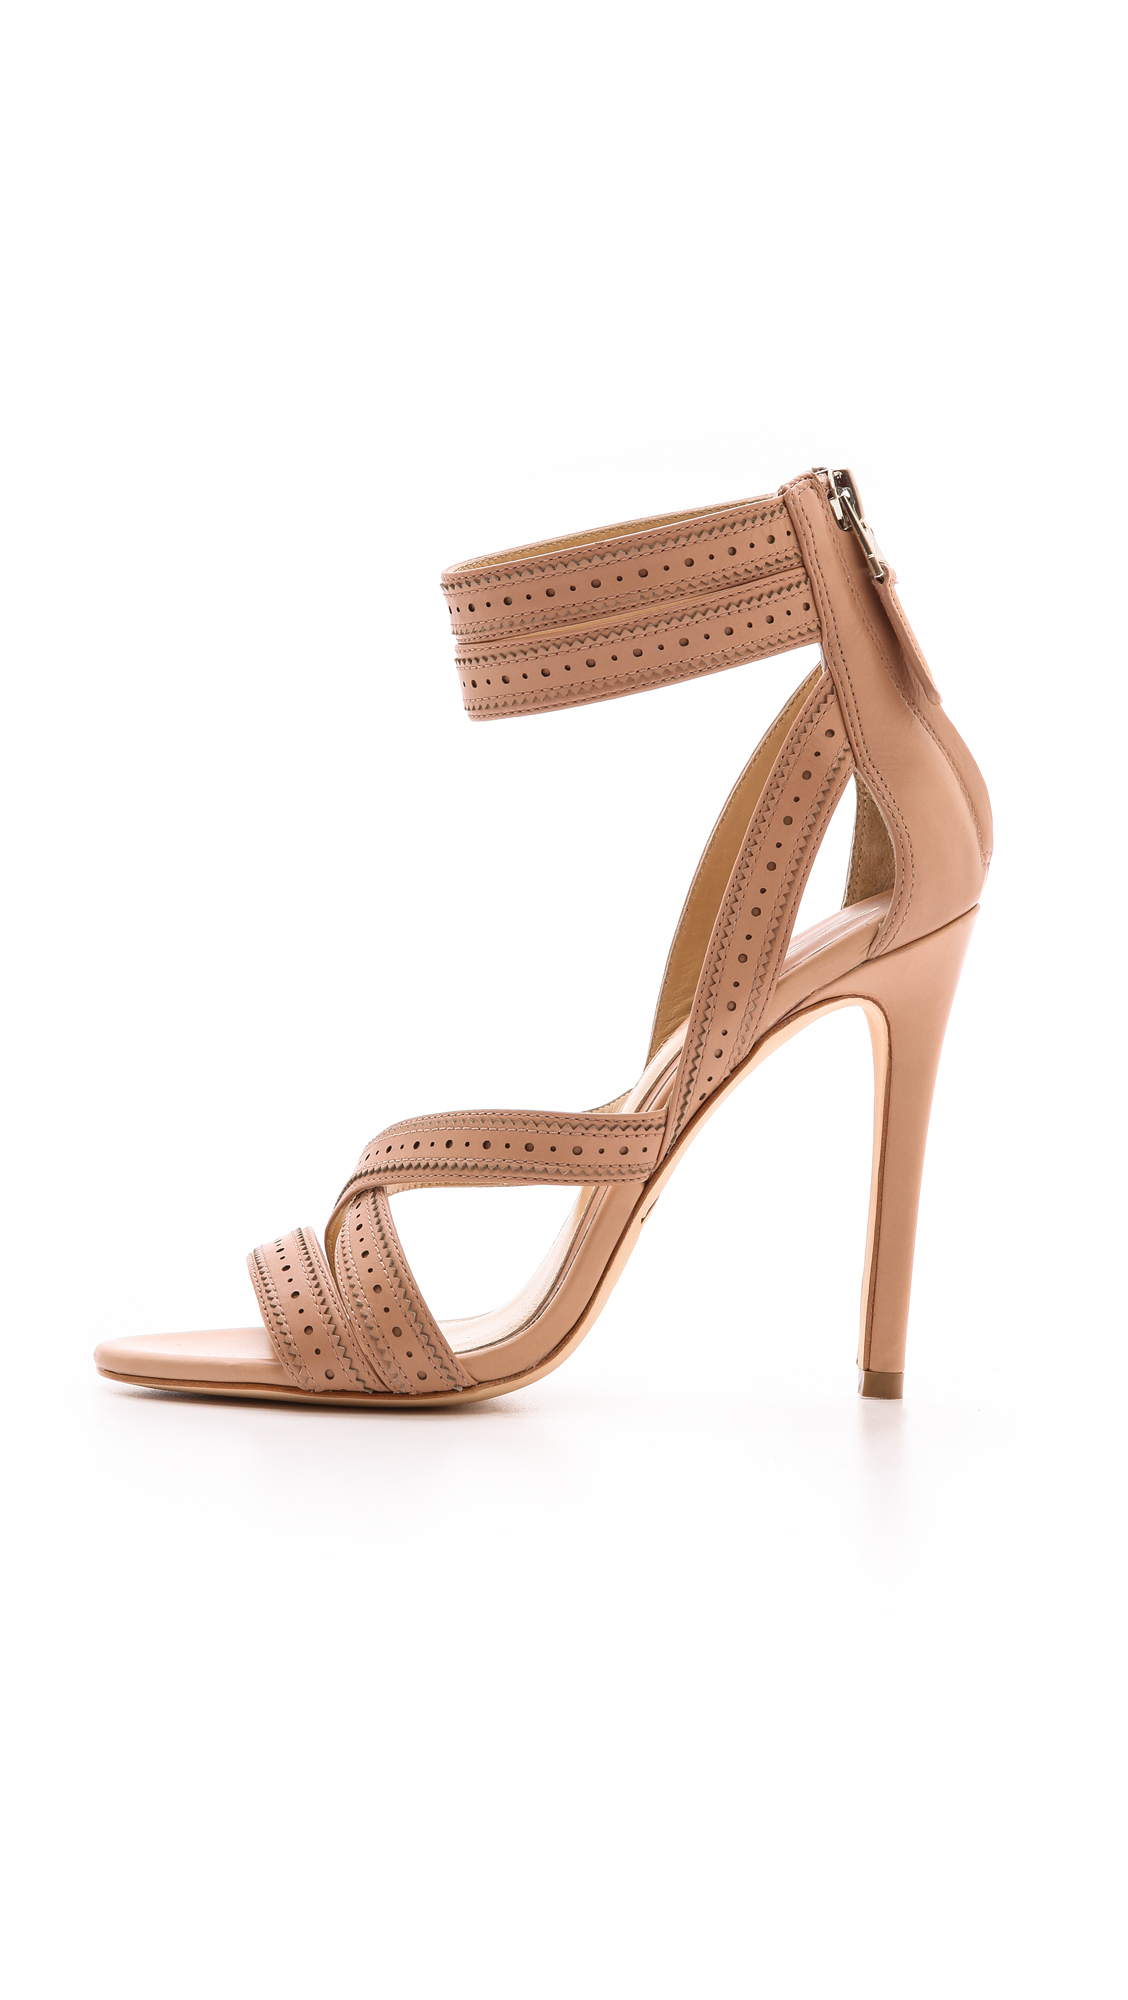 9c7408e24 Lyst - B Brian Atwood Lucila Strappy Sandals Light Pink in Pink